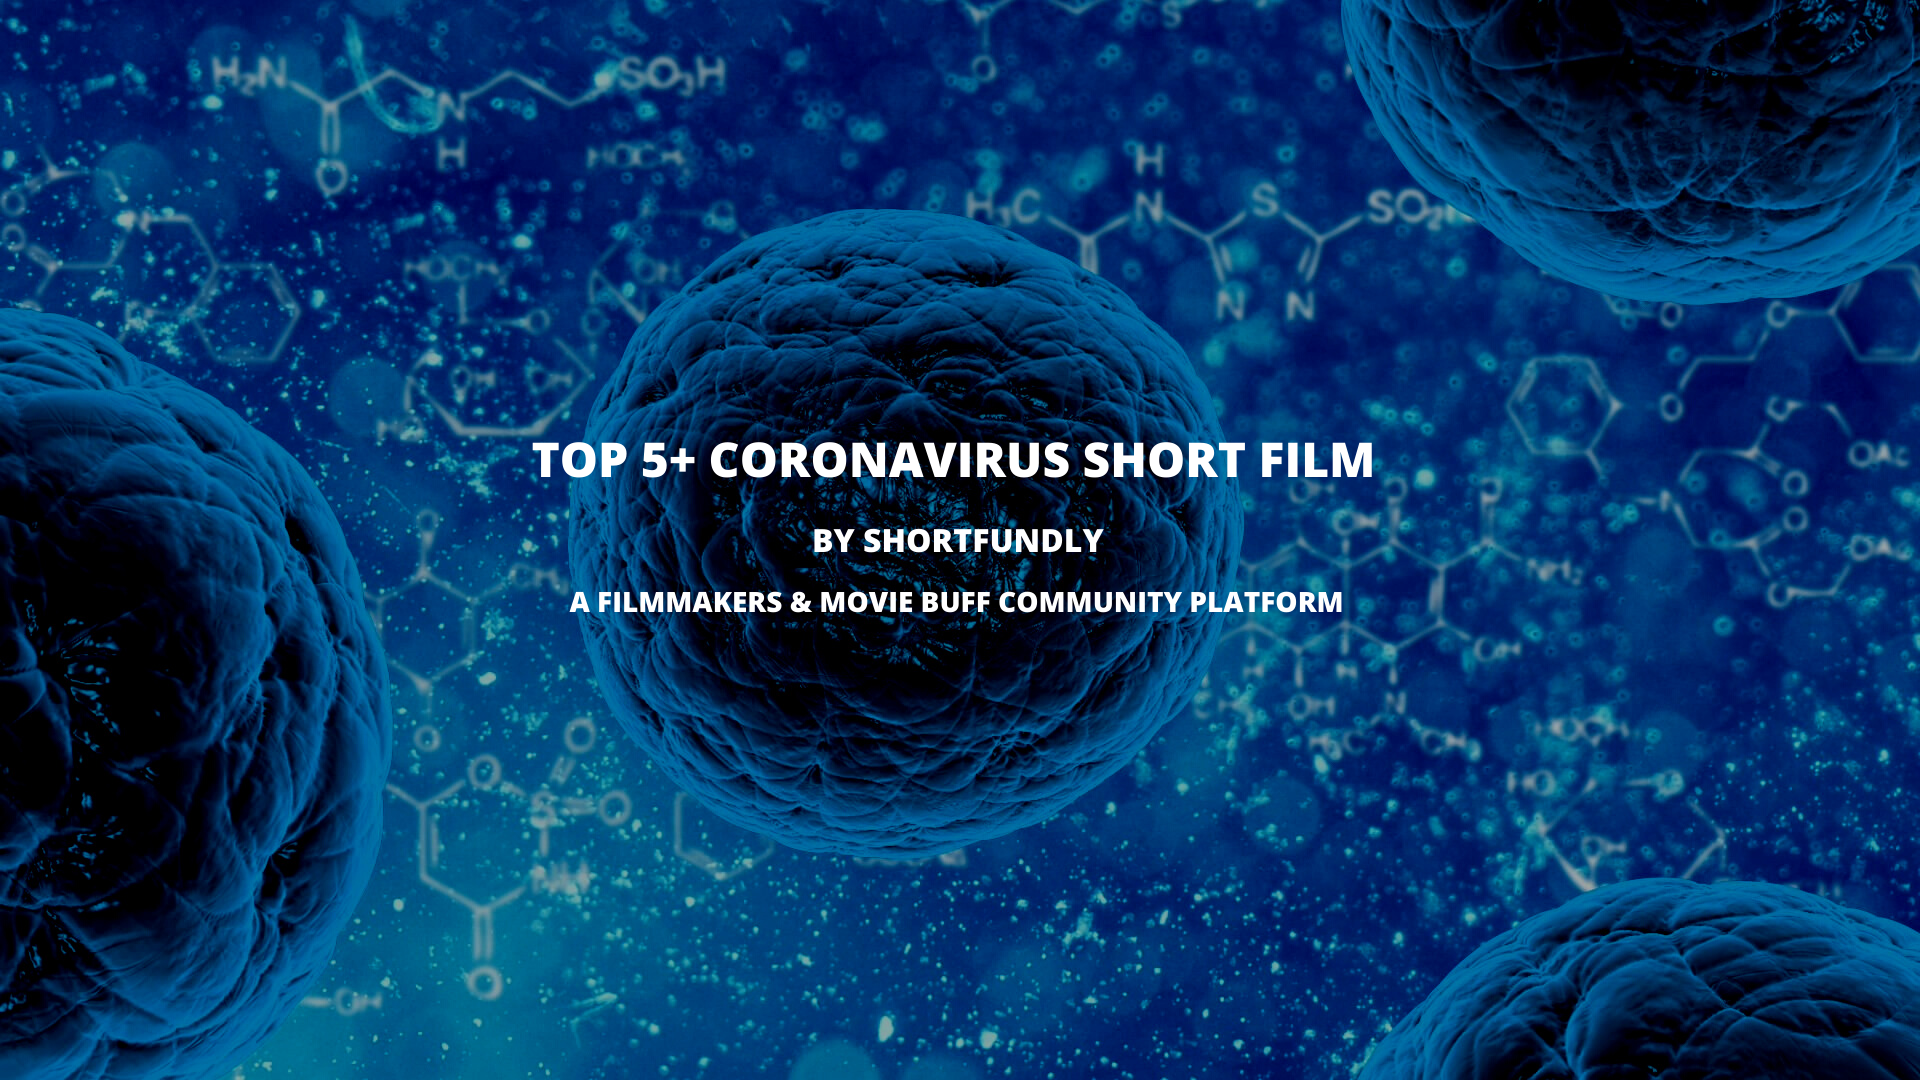 Top 5+ Coronavirus short film